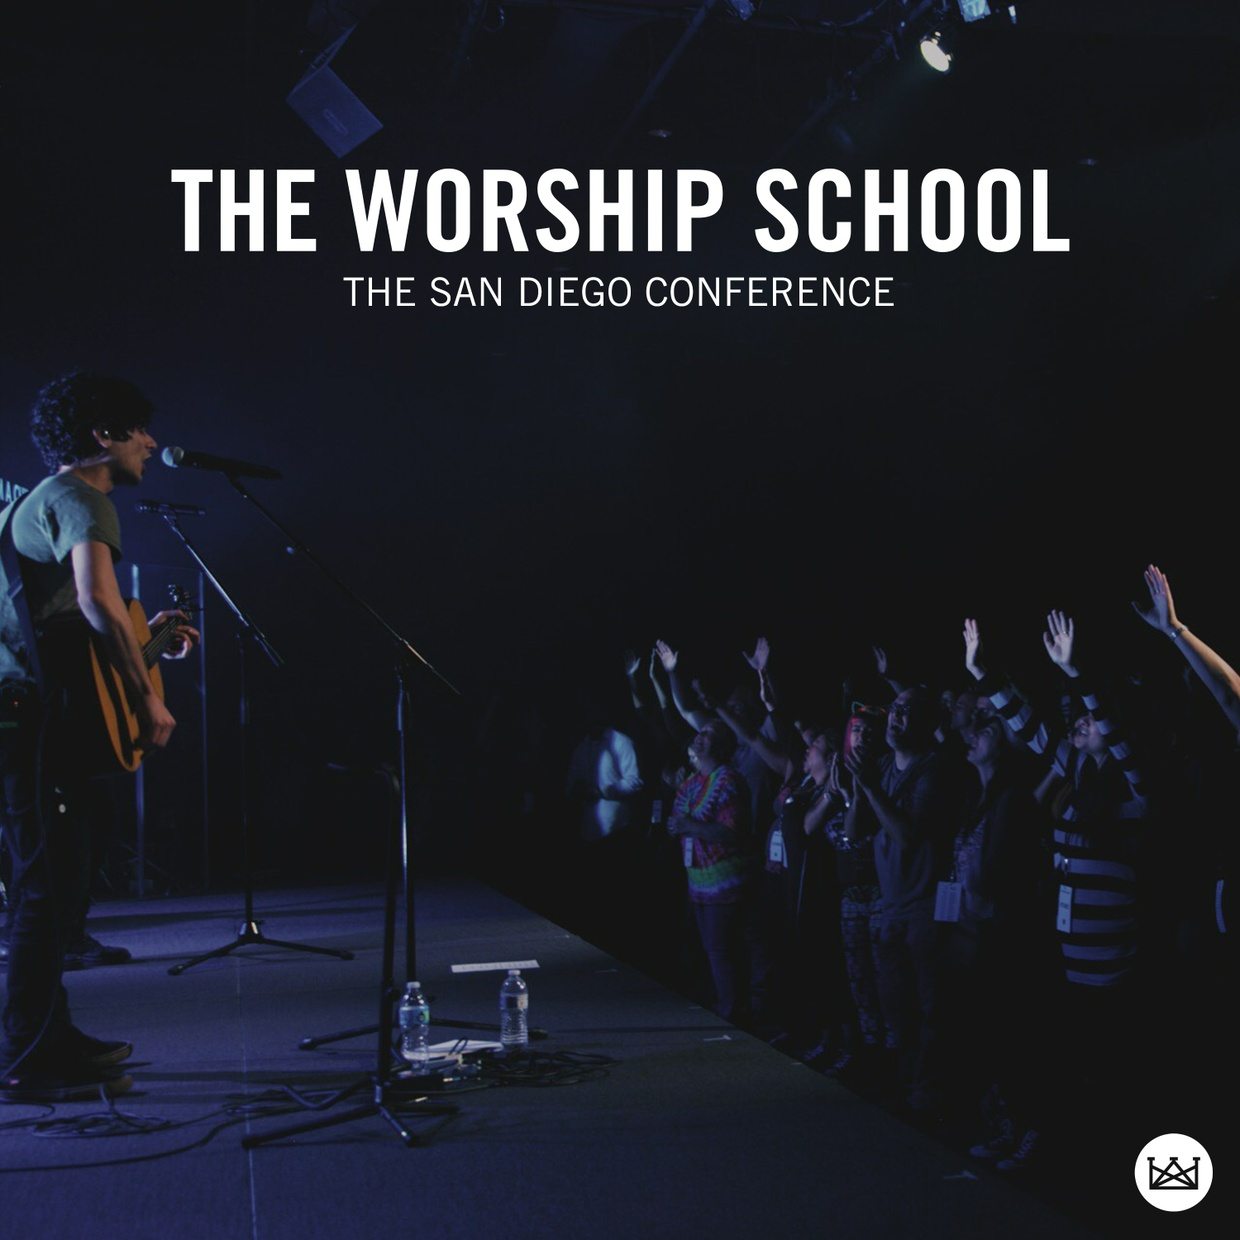 The Worship School - The San Diego Conference